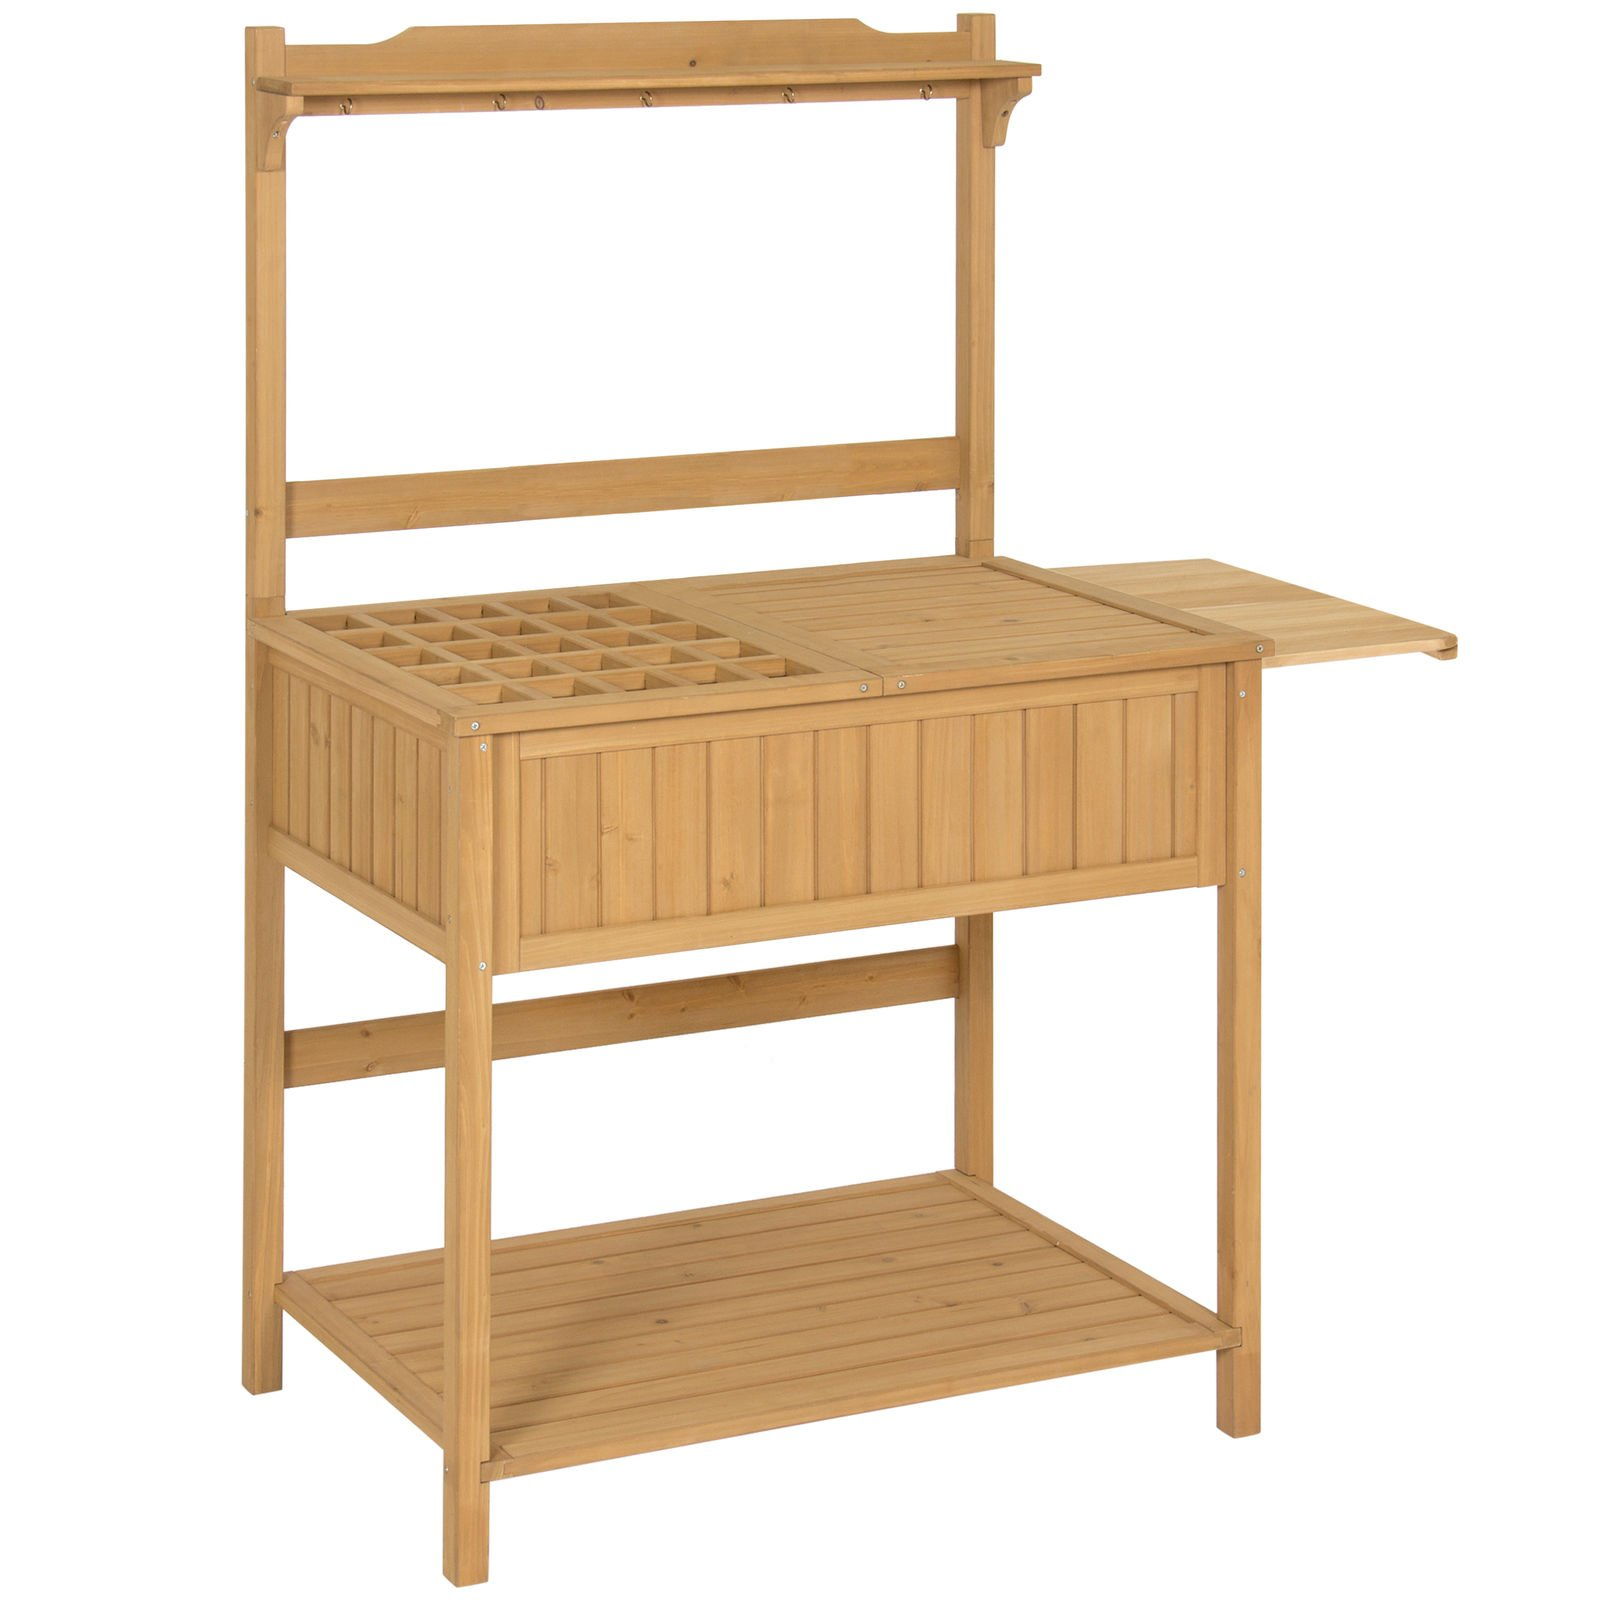 New Outdoor Garden Wooden Potting Bench Recessed Storage Work Station